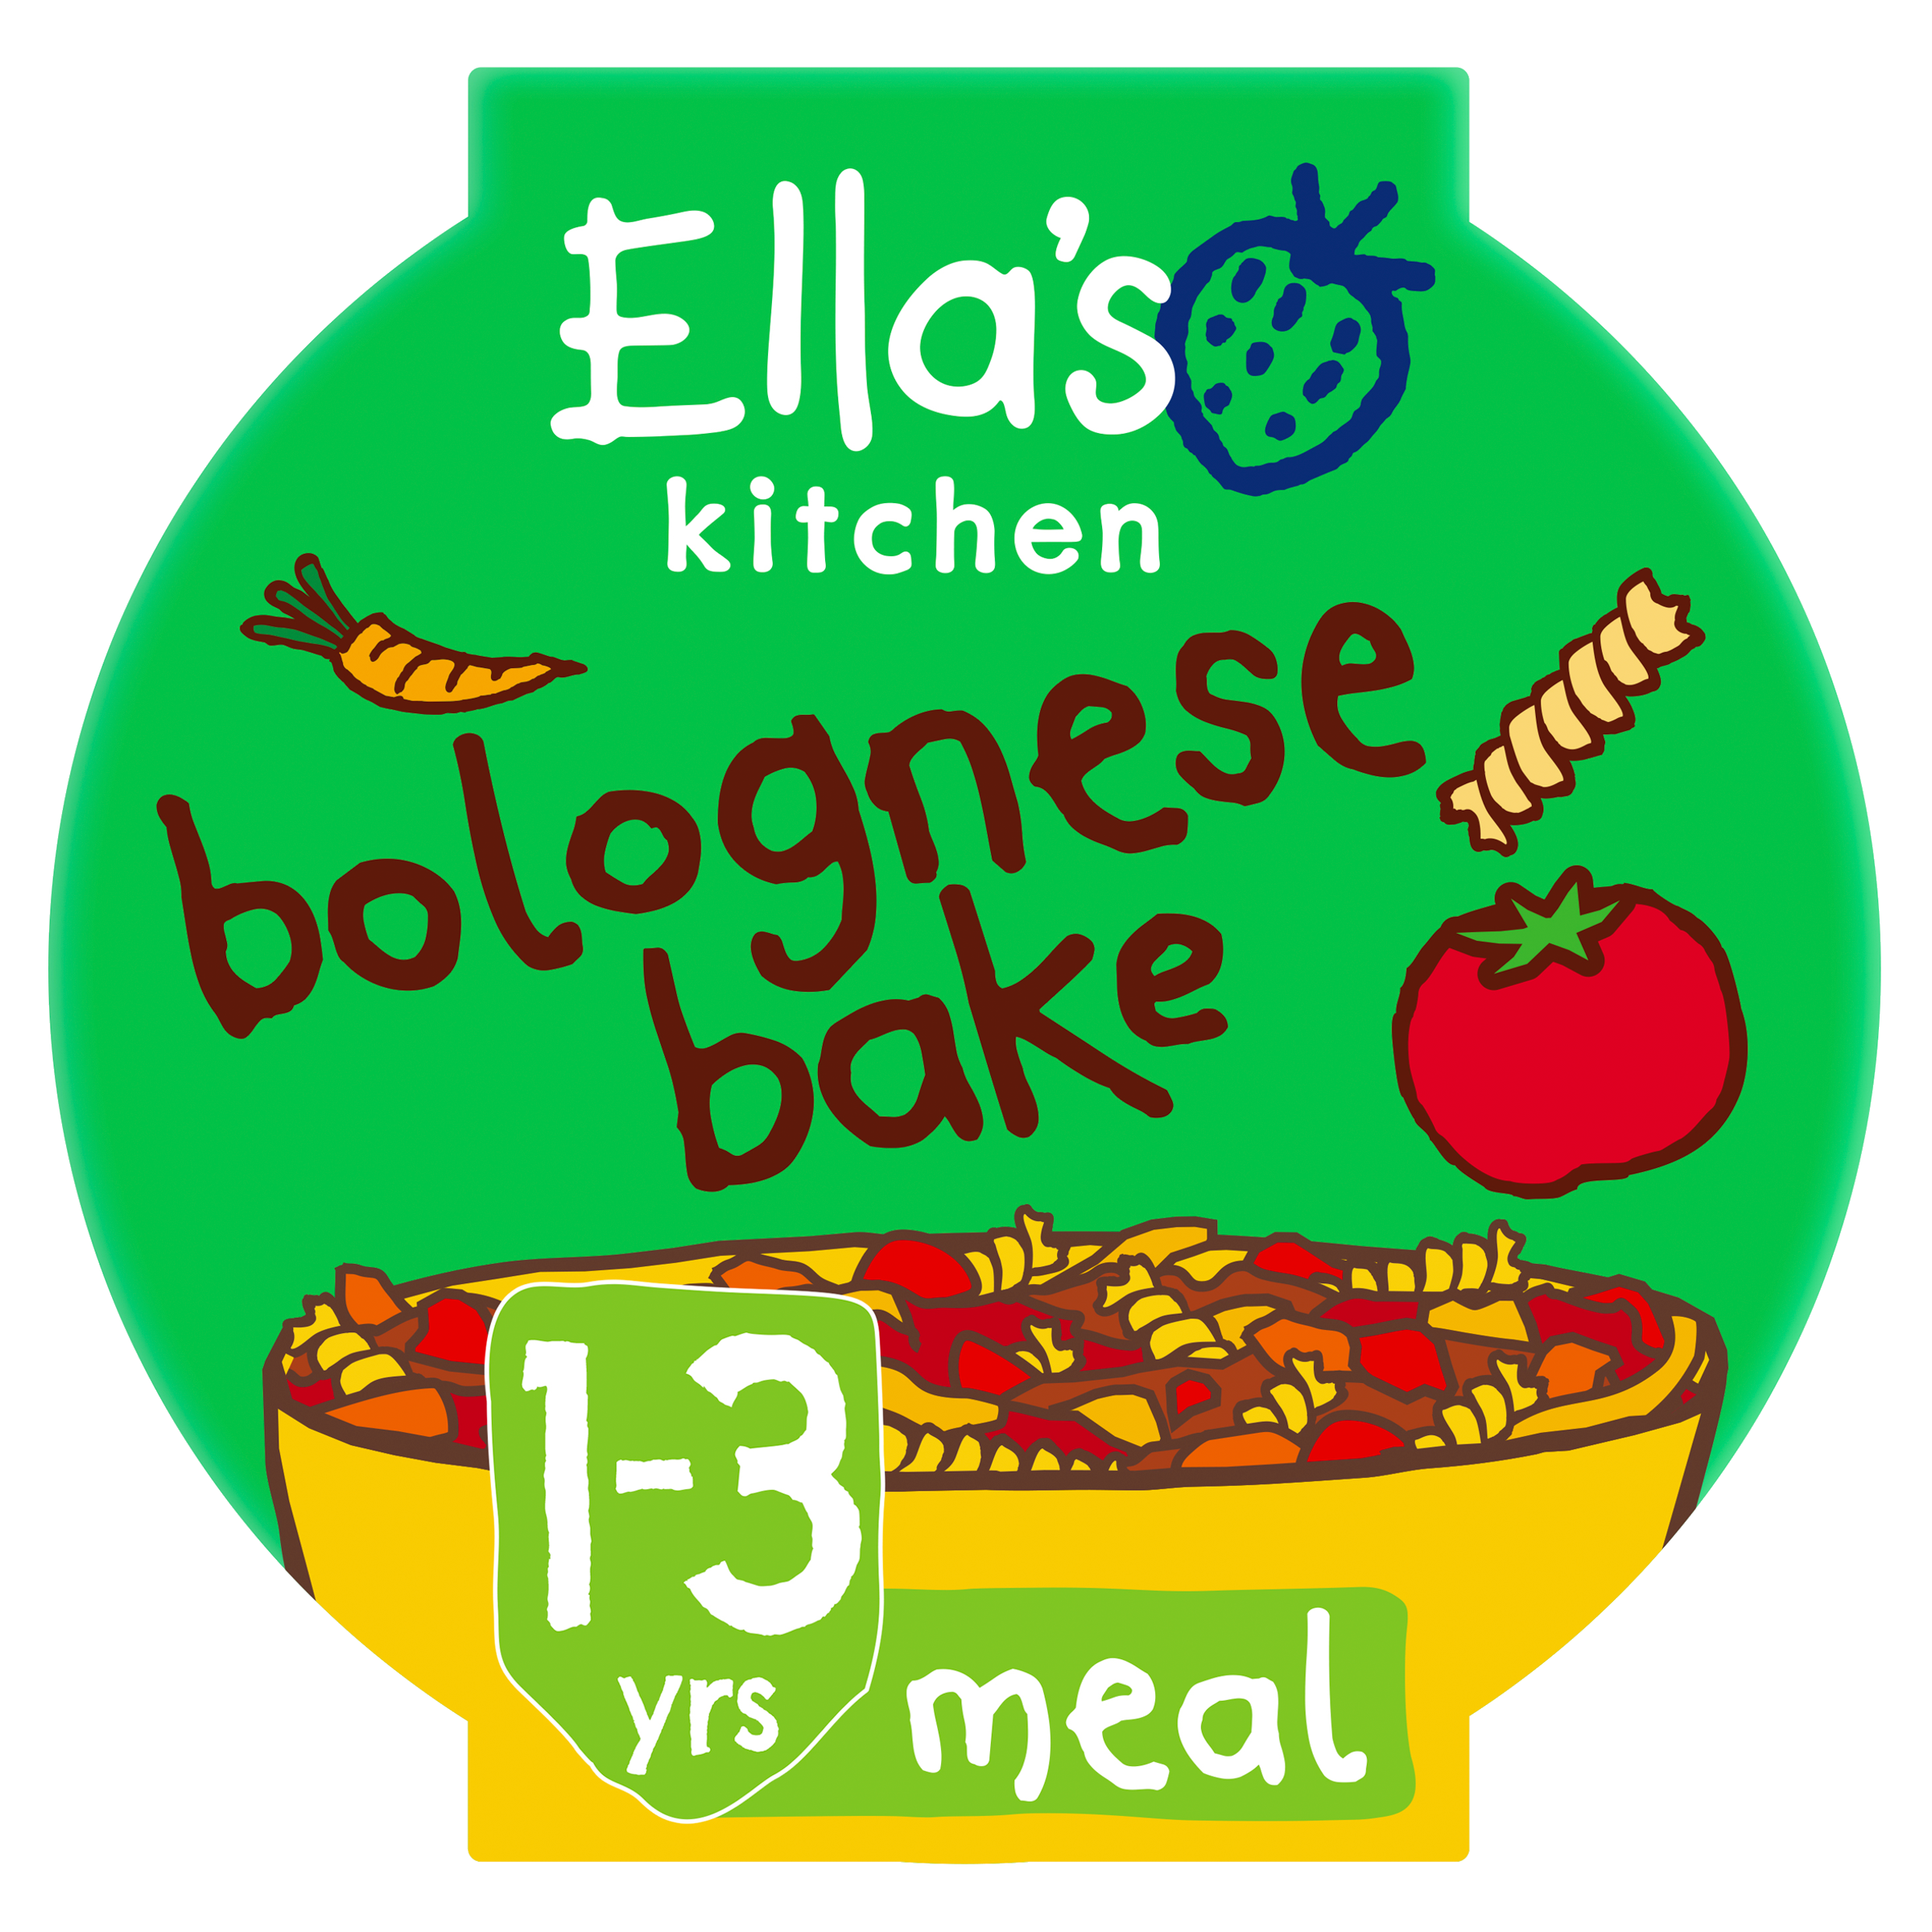 Ellas kitchen bolognese bake pot 1 3 years front of pack O